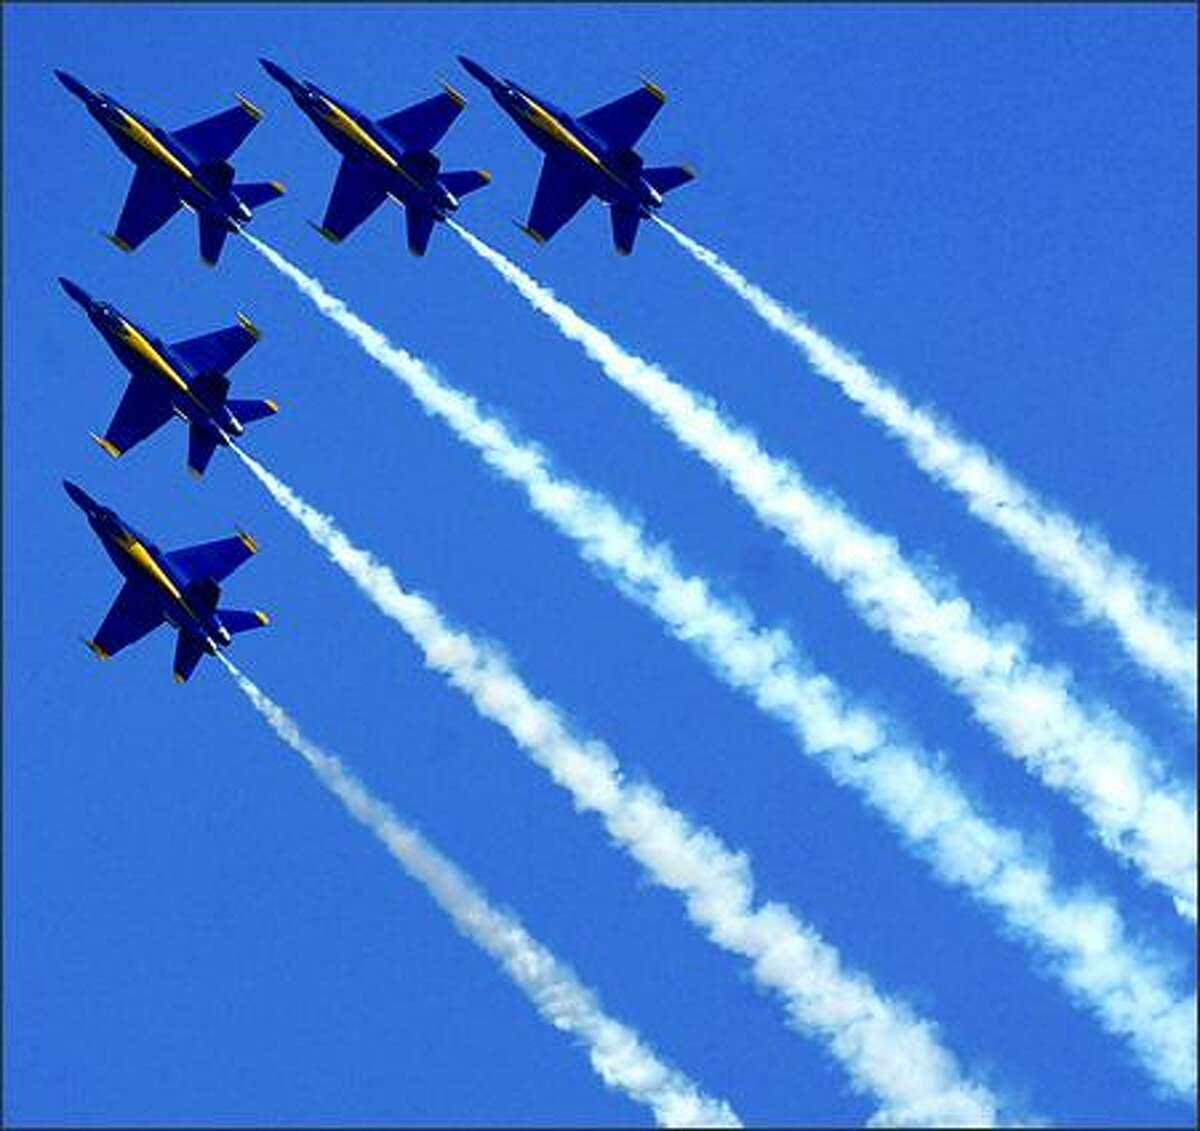 The Blue Angels make a practice run over Lake Washington.